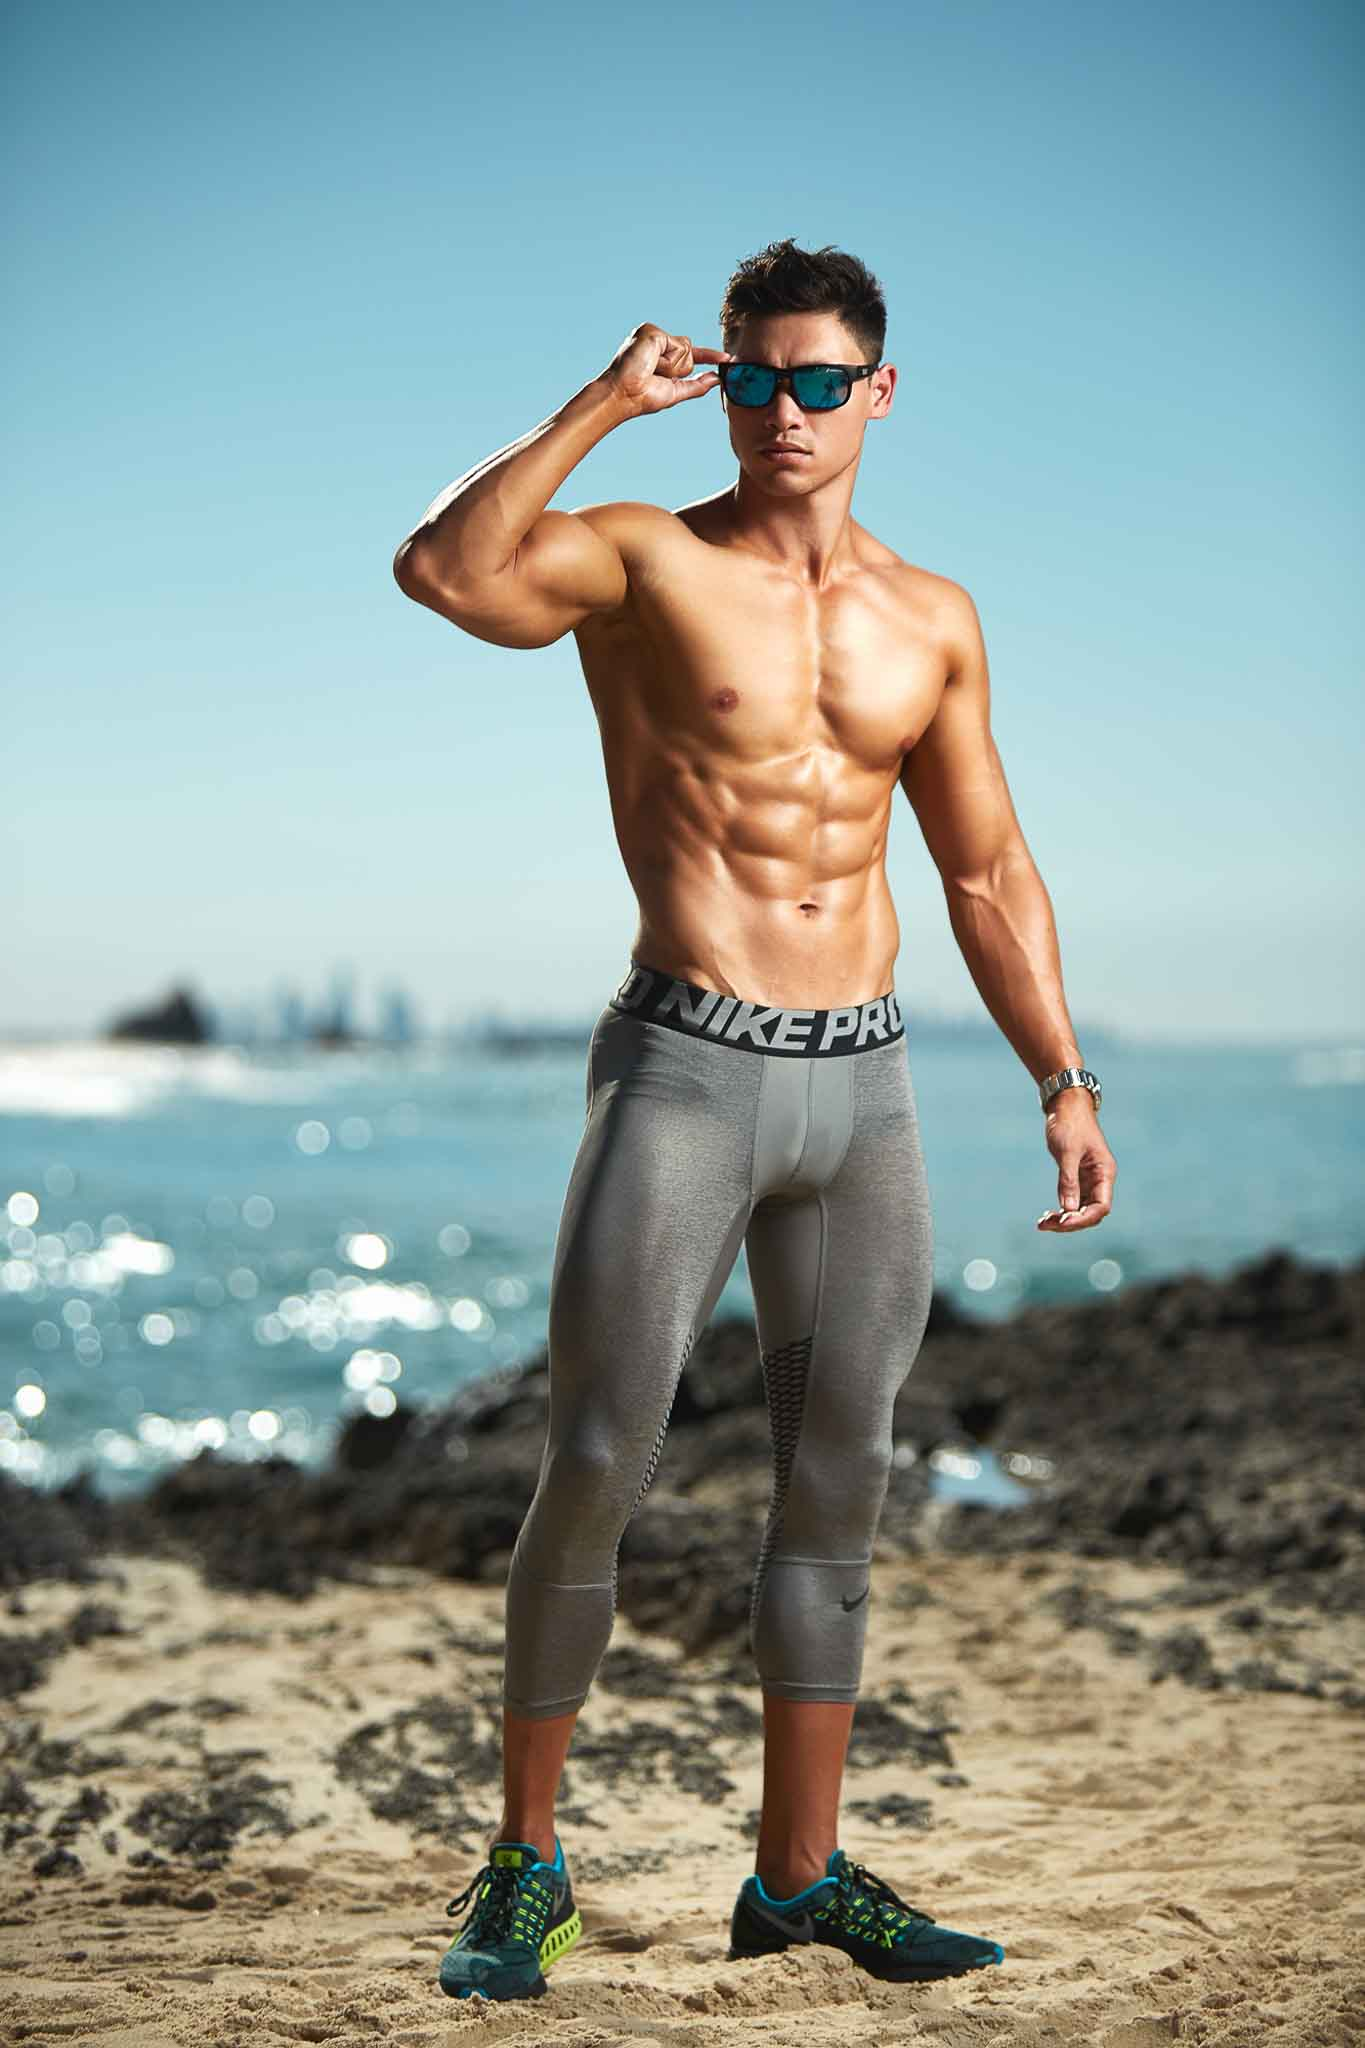 Andrew Mc standing on Queensland beach wearing sunglasses and Nike pro grey skins